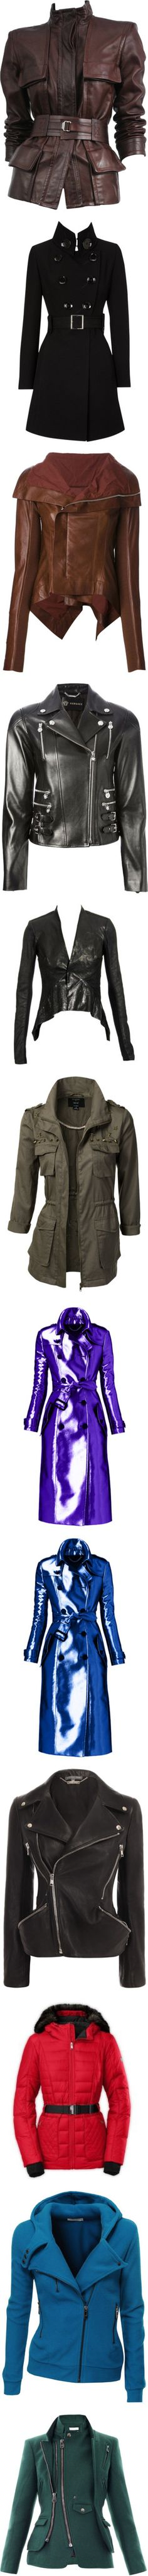 Coats, Jackets, Vests, etc. 6 by just-call-me-chuck on Polyvore featuring women's fashion, outerwear, jackets, coats, tops, coats & jackets, multiple, leather jacket with belt, brown leather jacket and genuine leather jacket